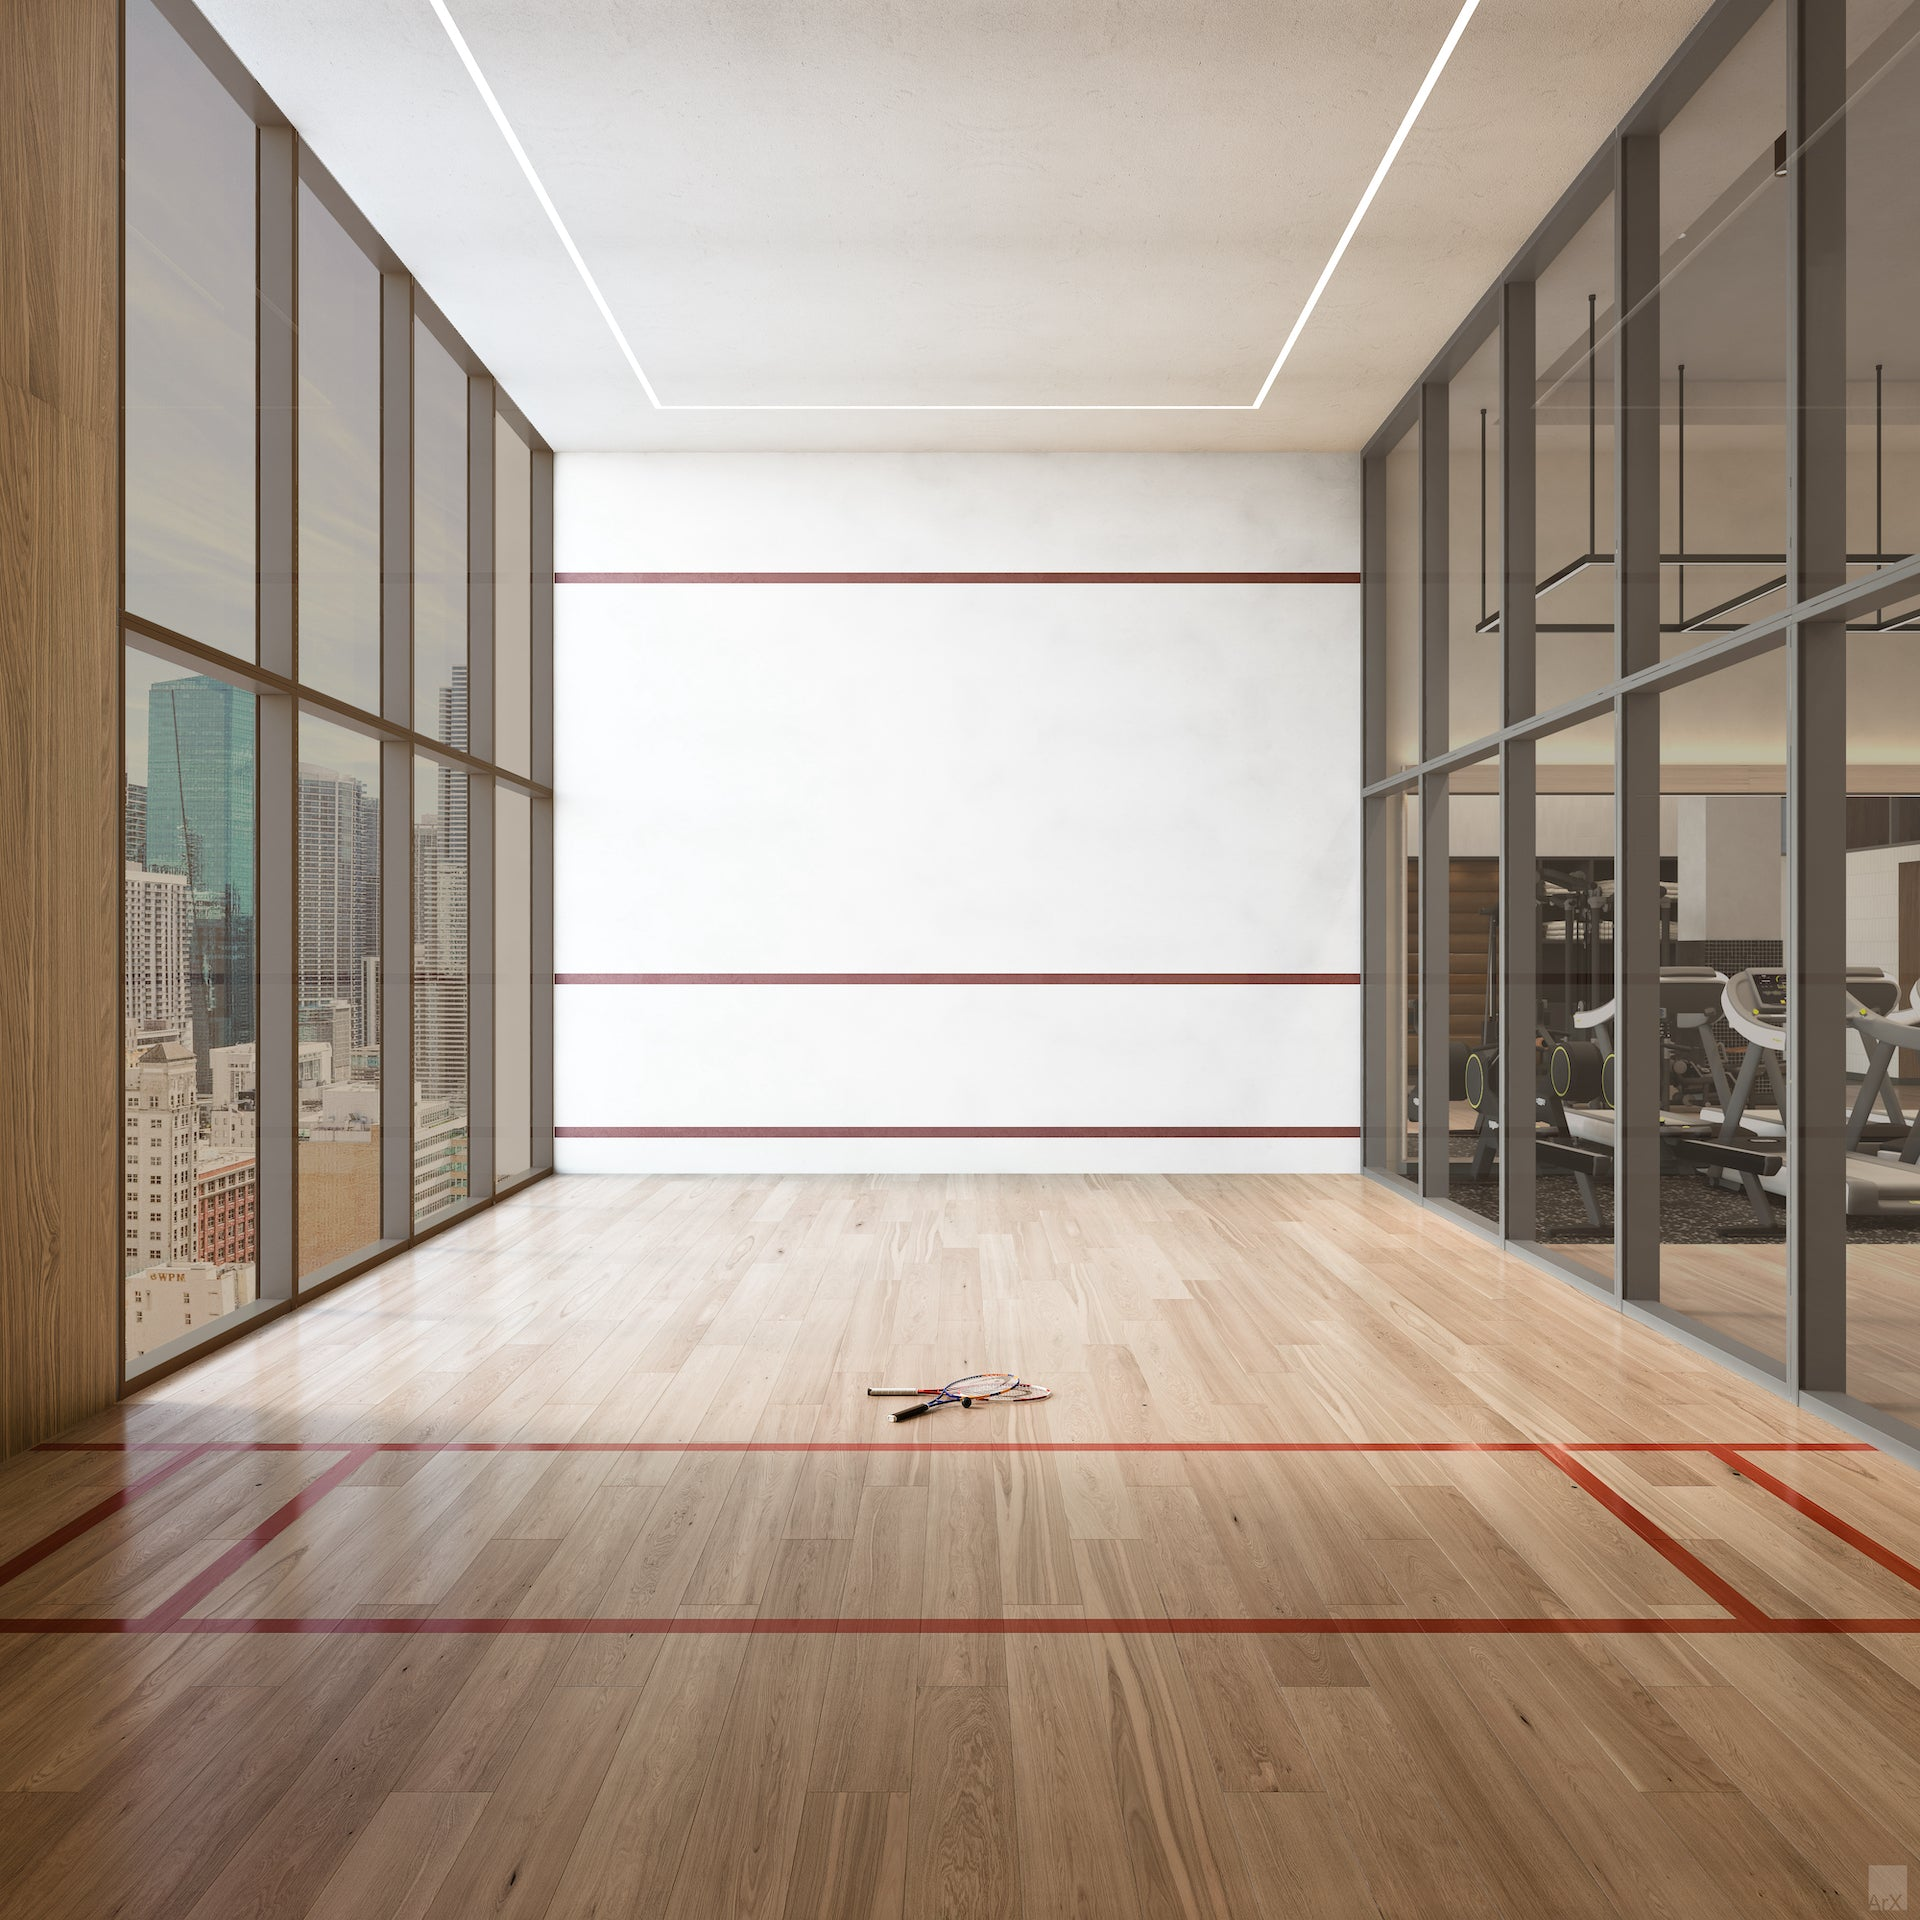 Indoor squash court, one of the public amenities at District 225 in downtown Miami. Photo © Meshberg Group